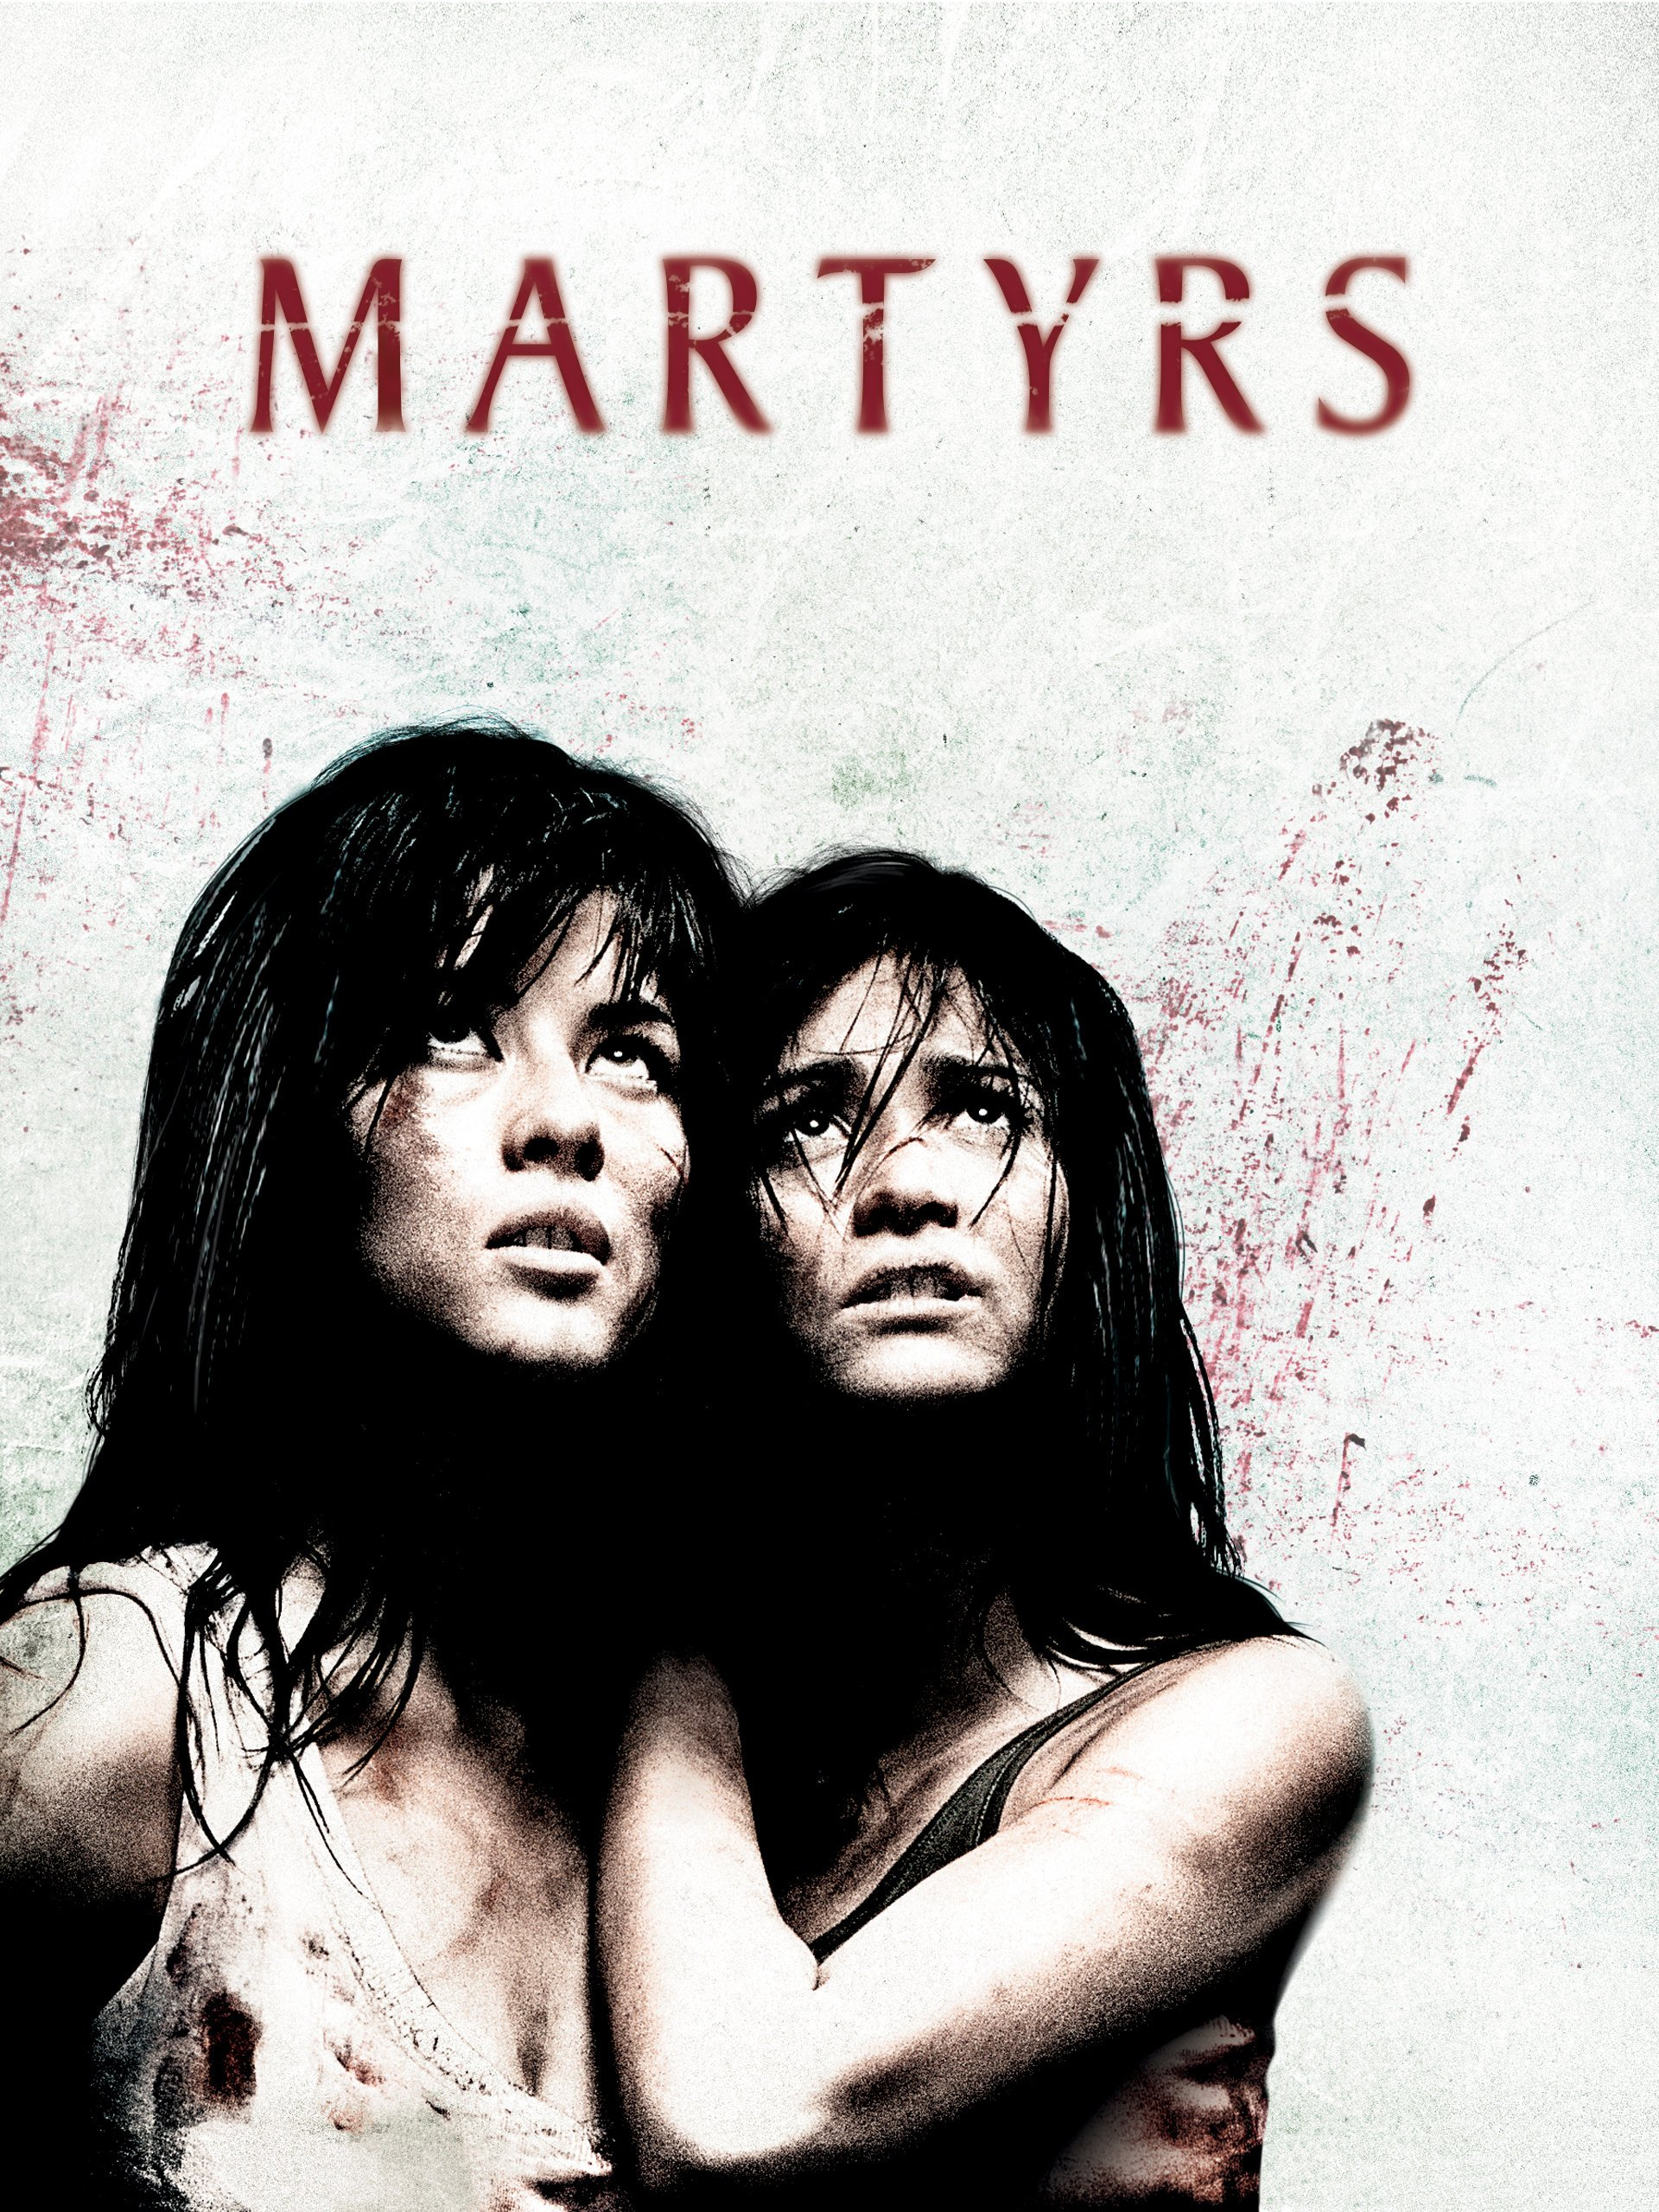 martyrs full movie in english